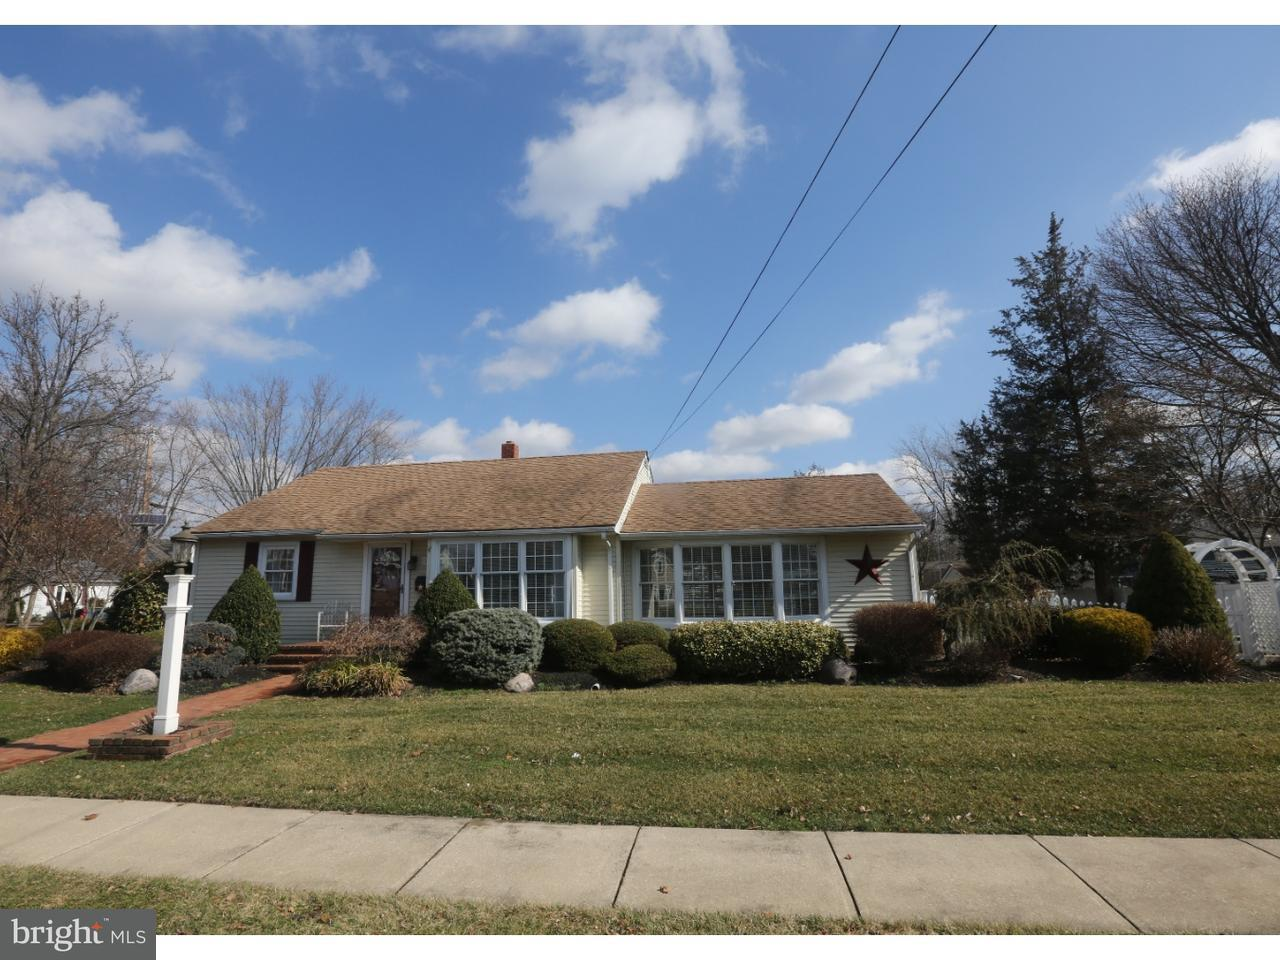 Single Family Home for Sale at 15 N BELLMAWR Avenue Bellmawr, New Jersey 08031 United States